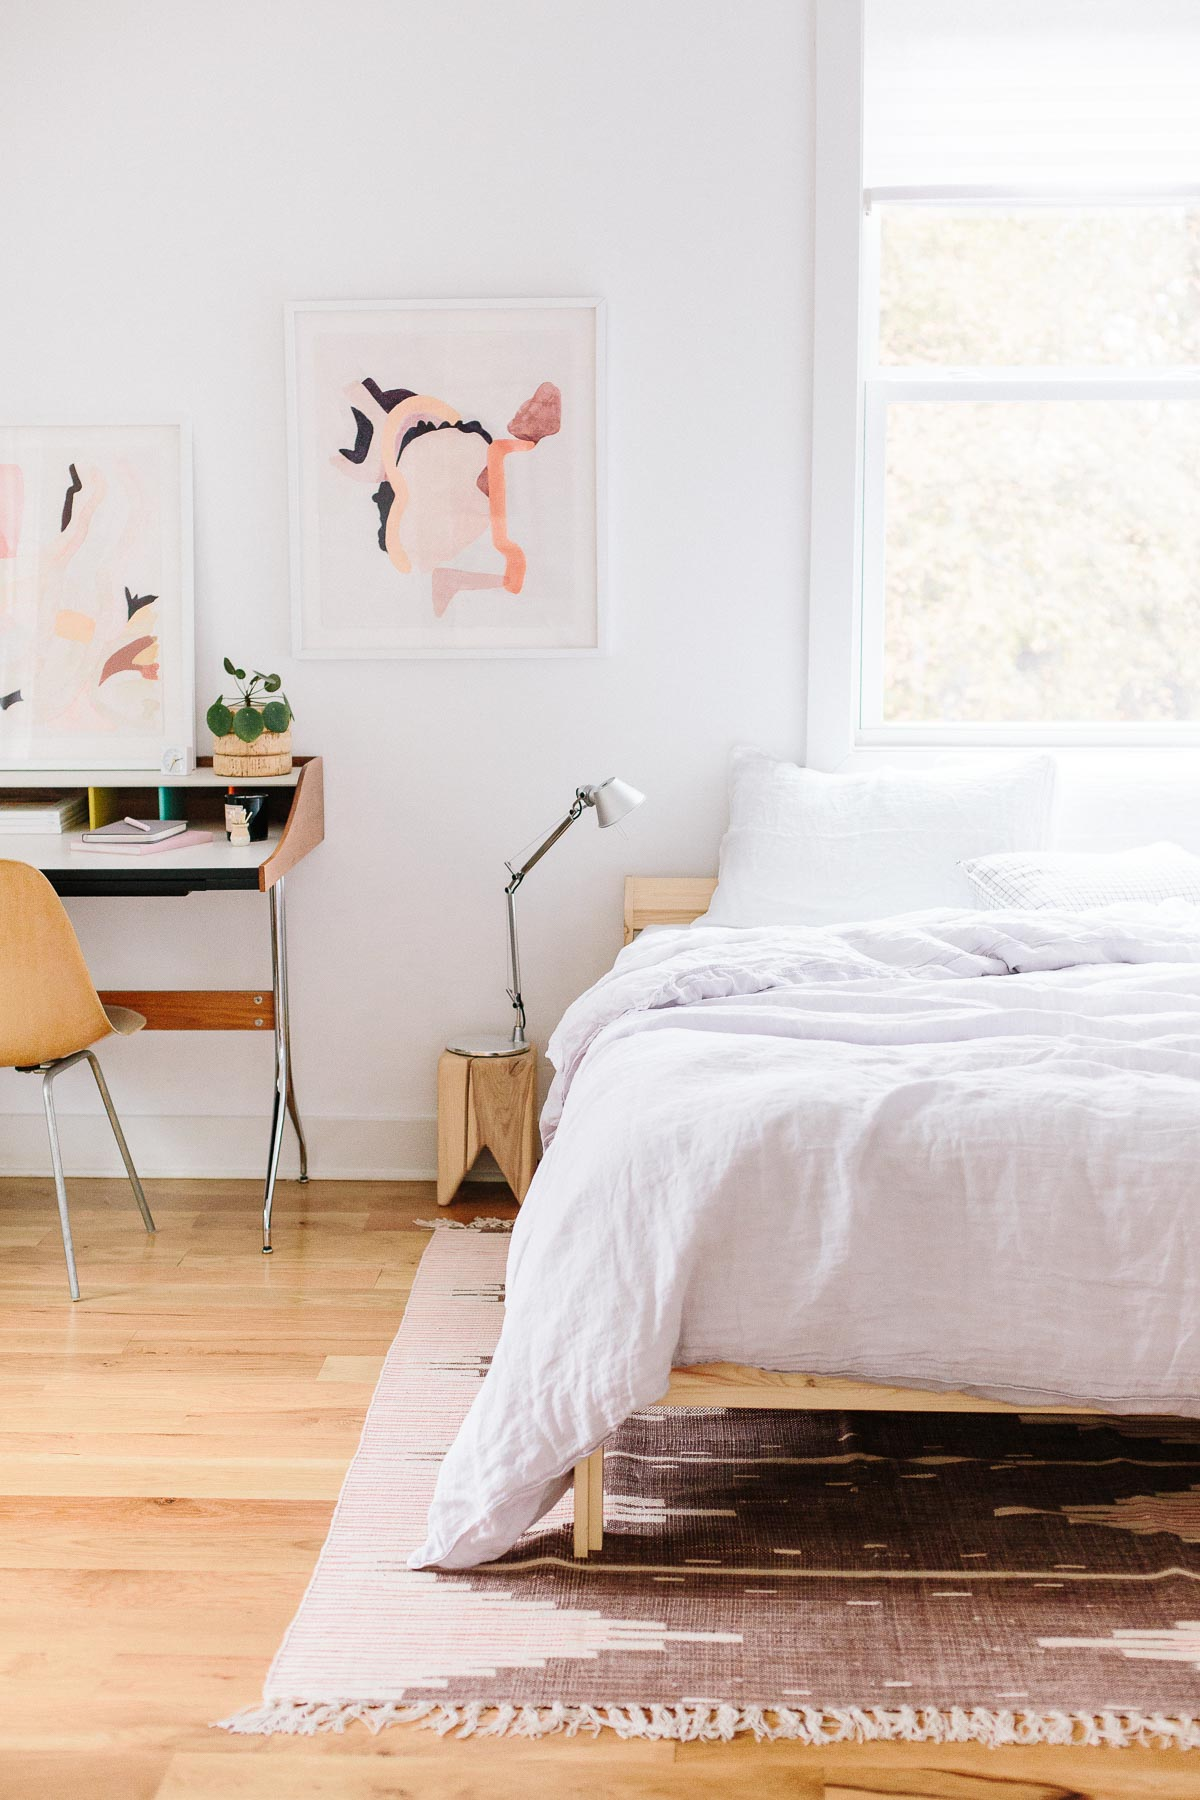 Colorful abstract artwork hanging in a simple, modern bedroom.